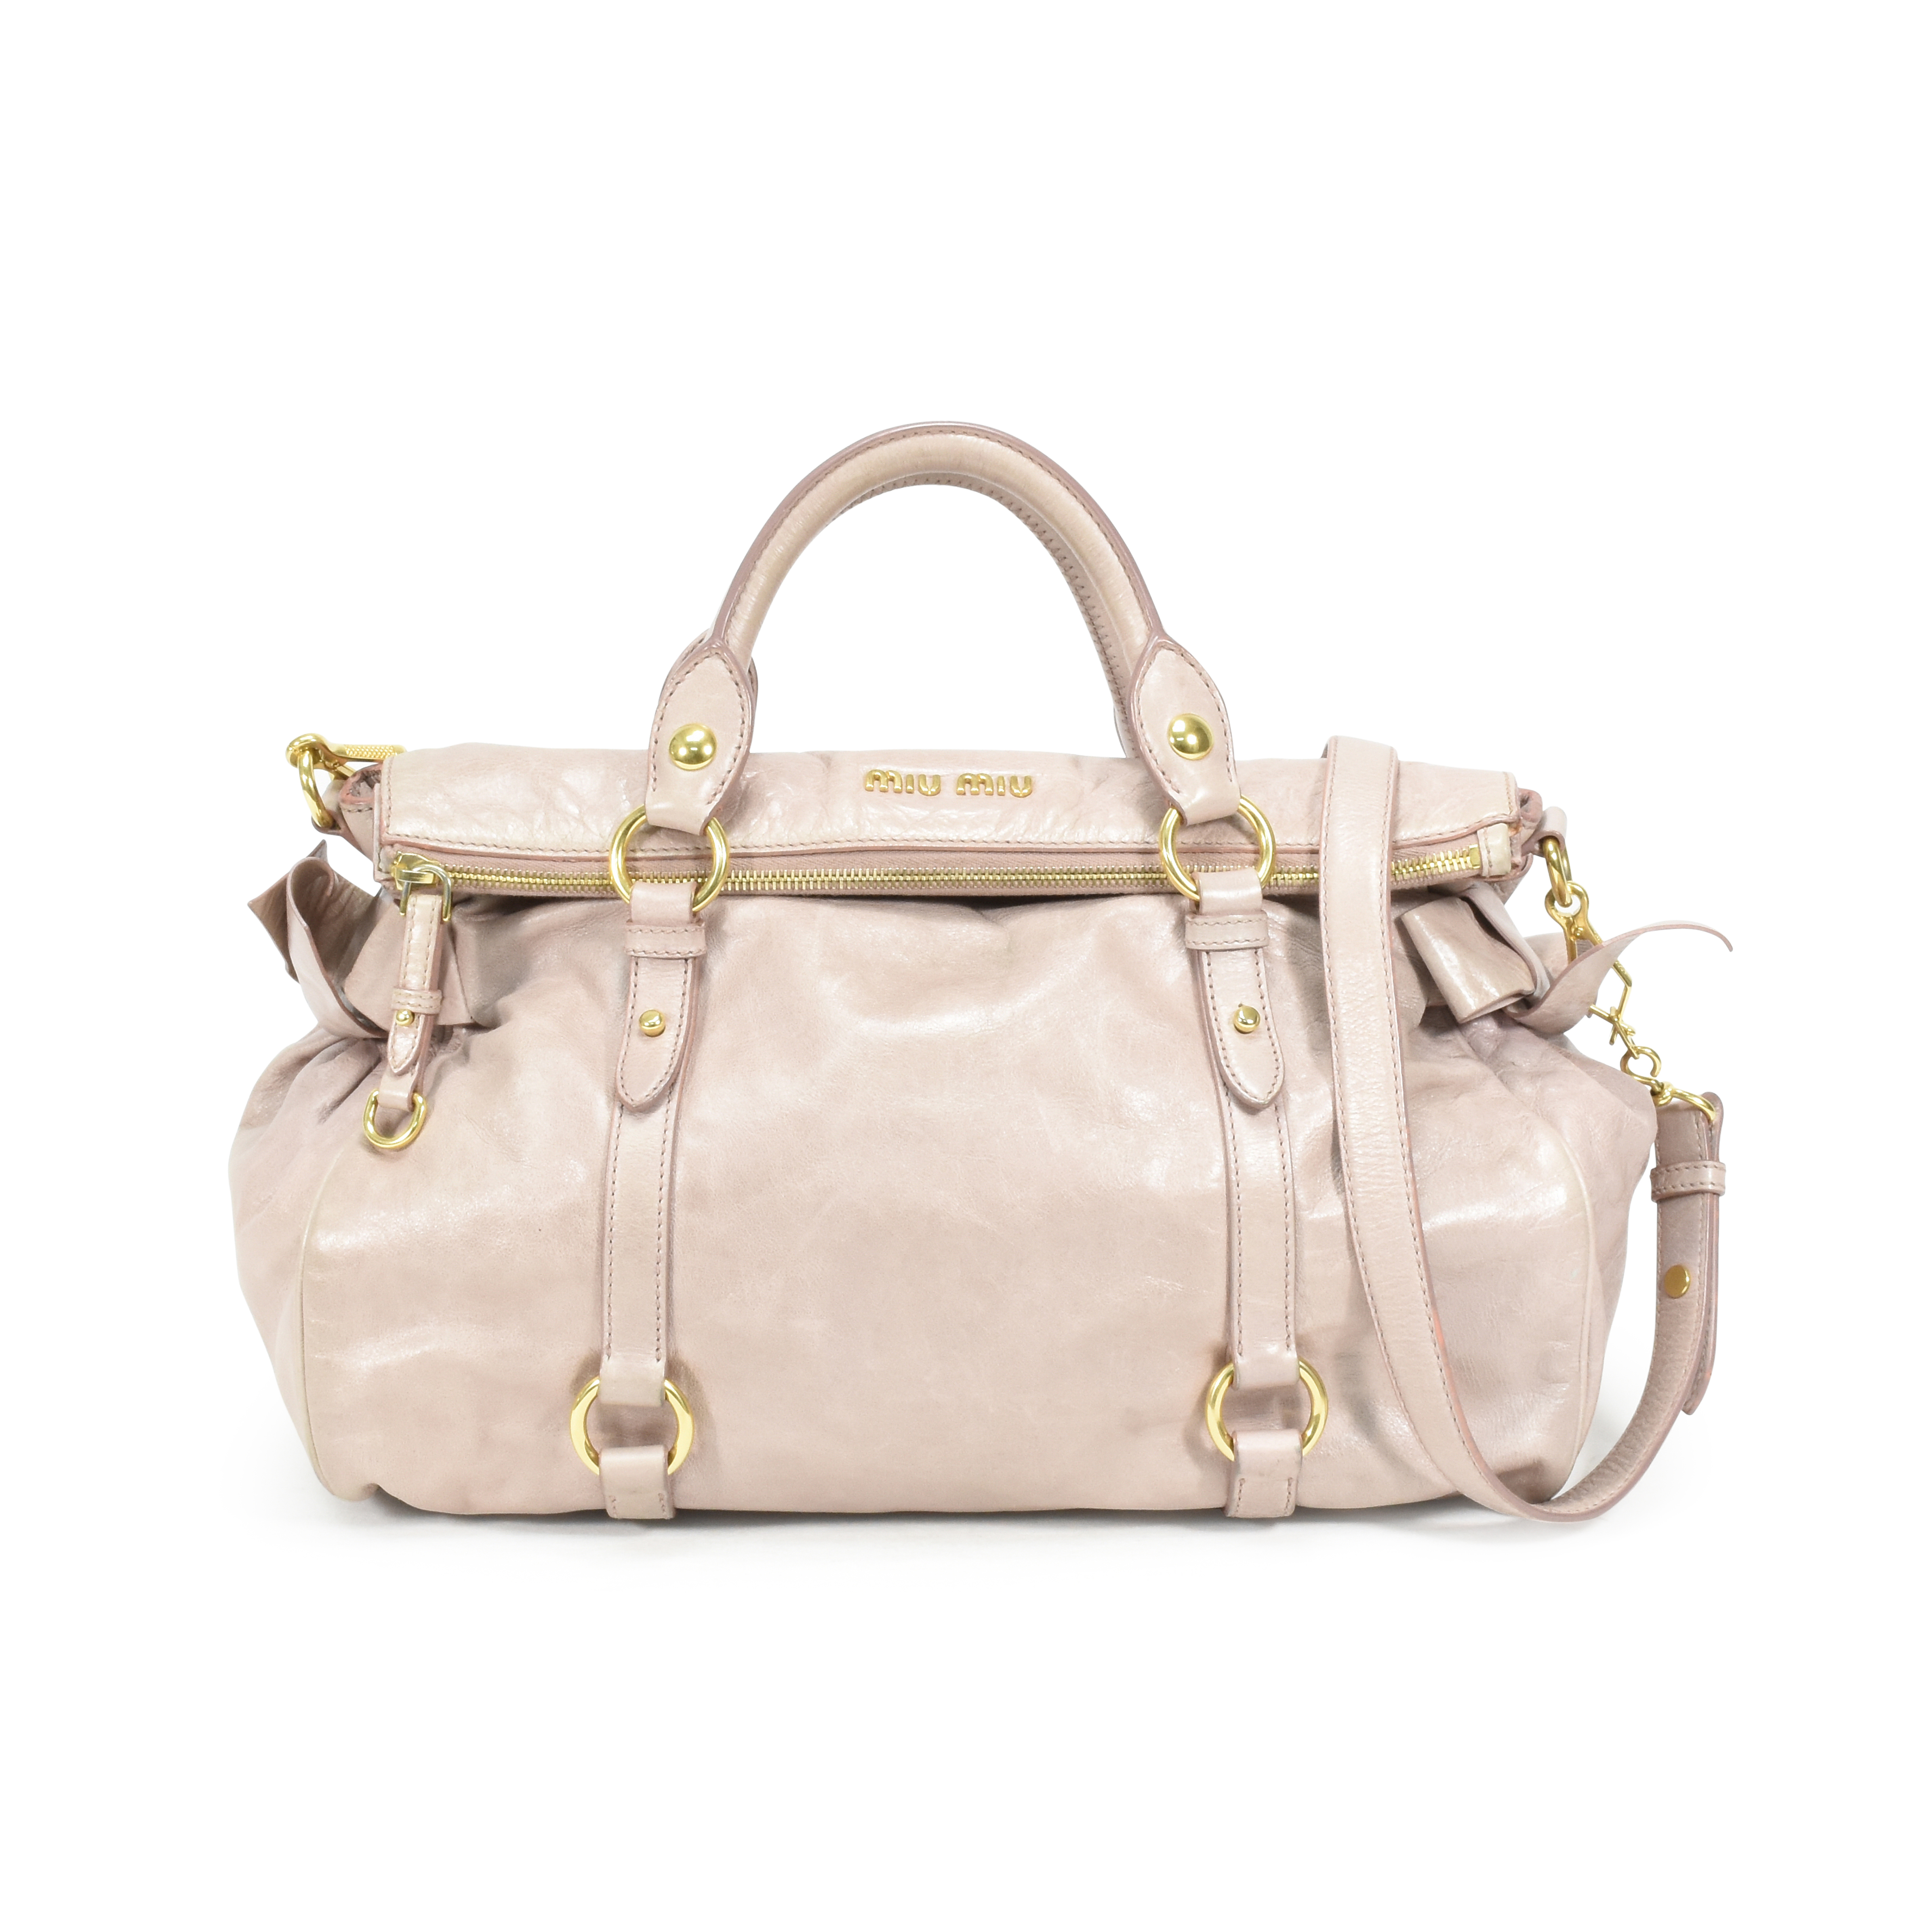 416f96775b52 Authentic Second Hand Miu Miu Vitello Lux Bow Bag (PSS-361-00022 ...